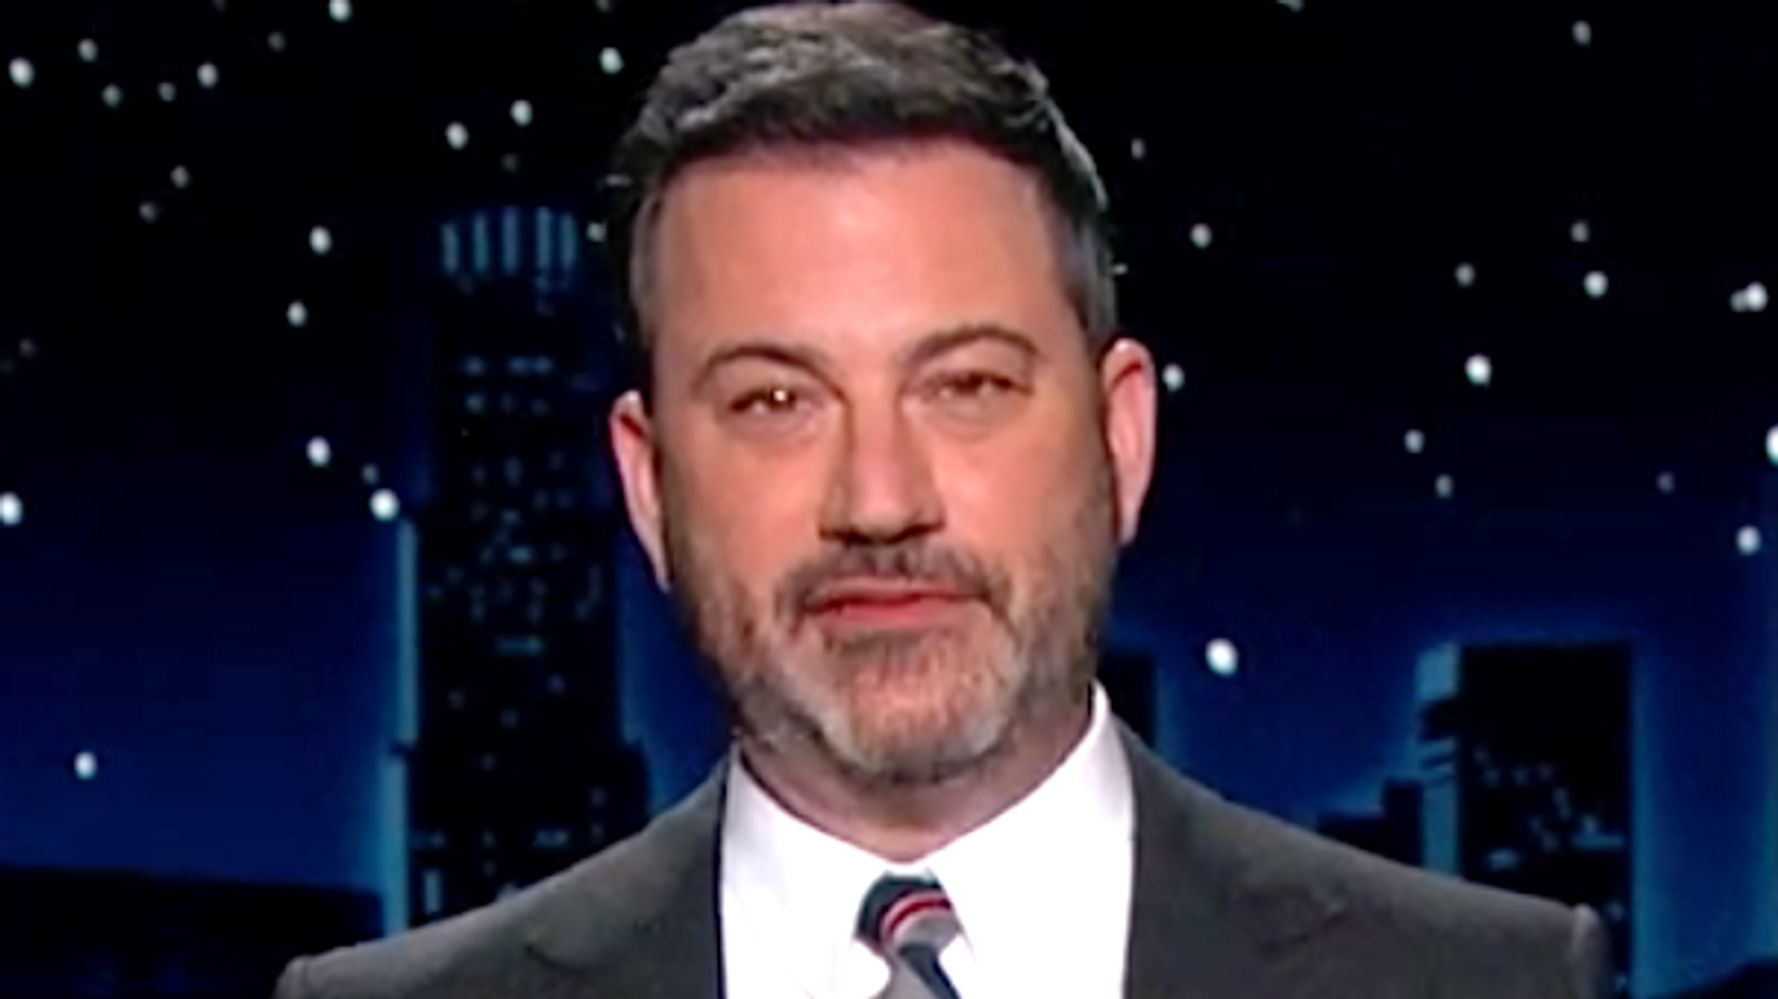 Jimmy Kimmel Taunts Donald Trump With Yet Another New Nickname